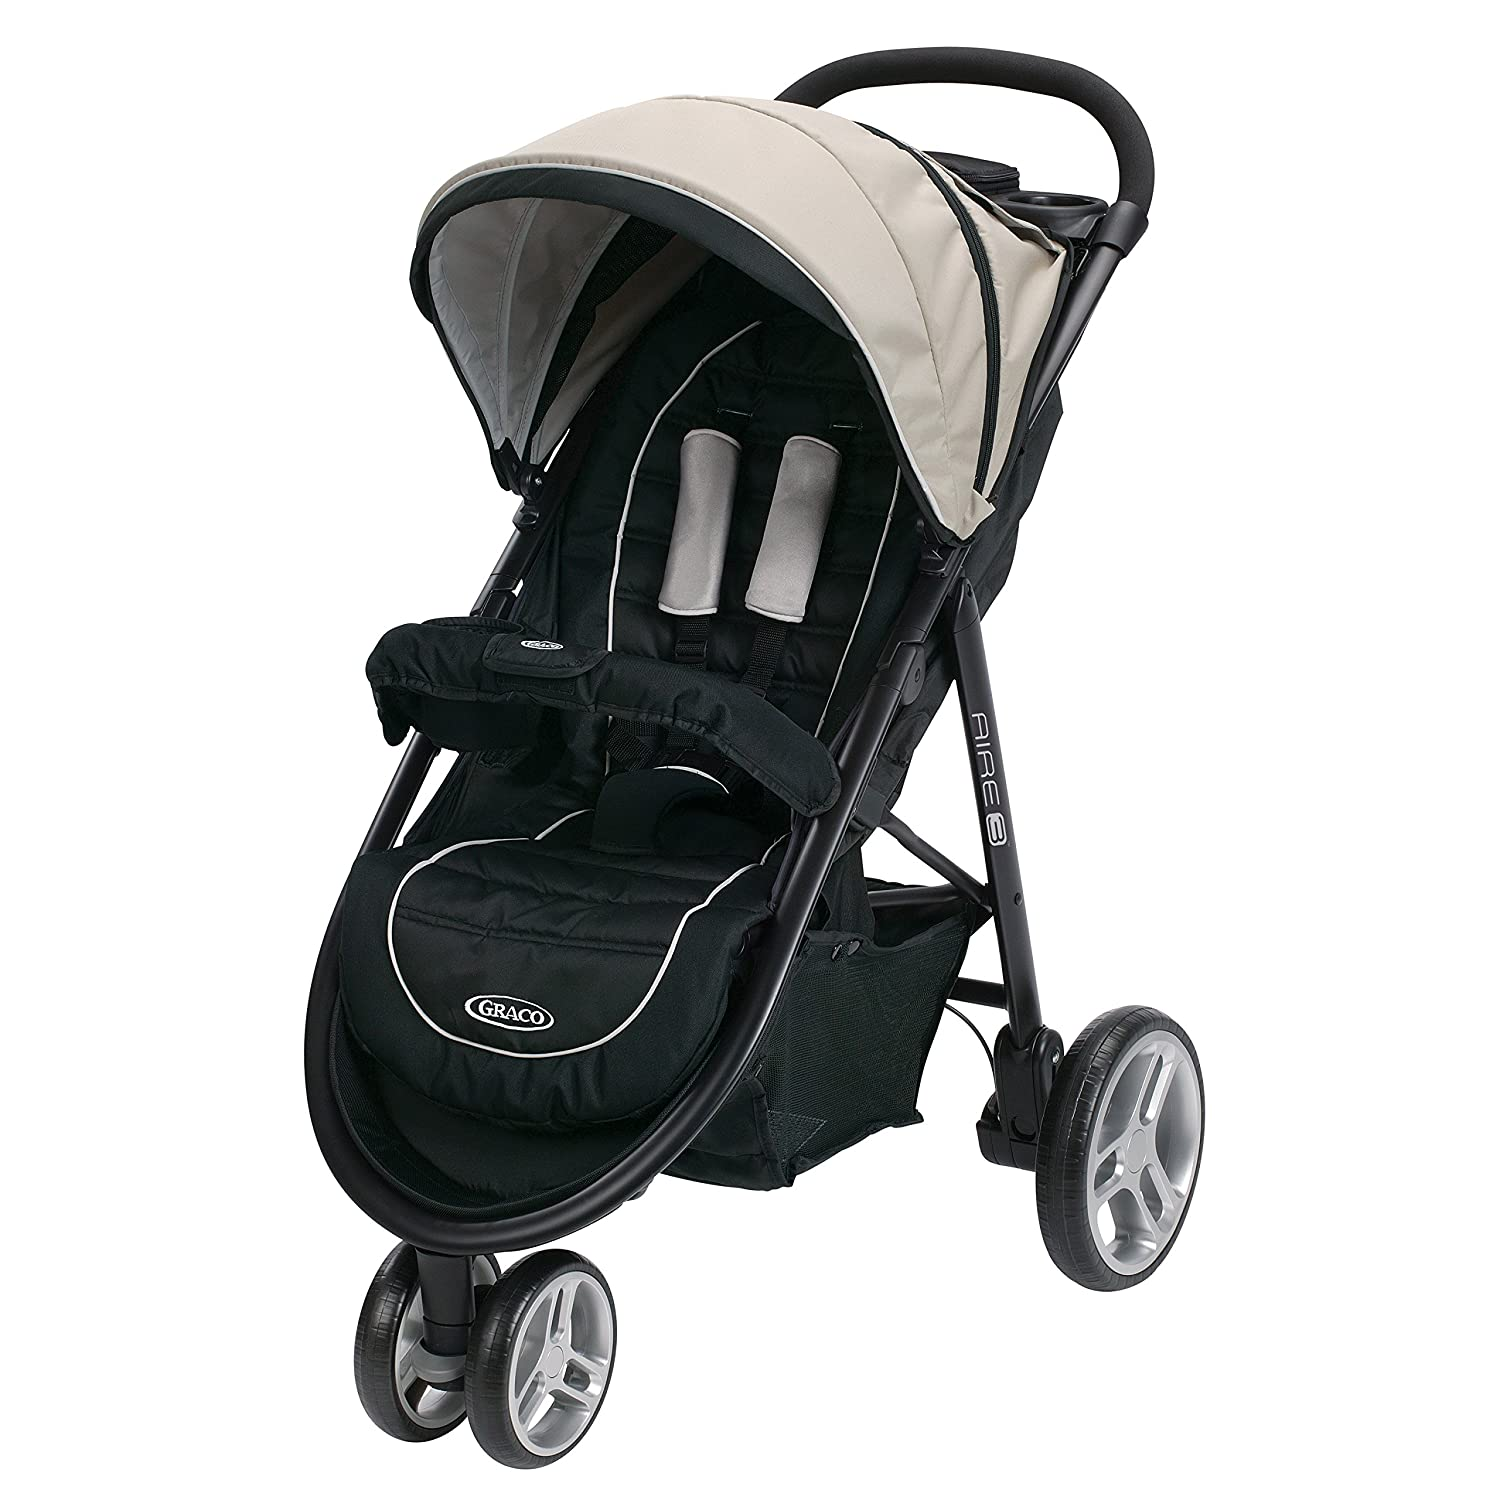 Graco Aire3 Click Connect Stroller, Pierce, One Size 1927625